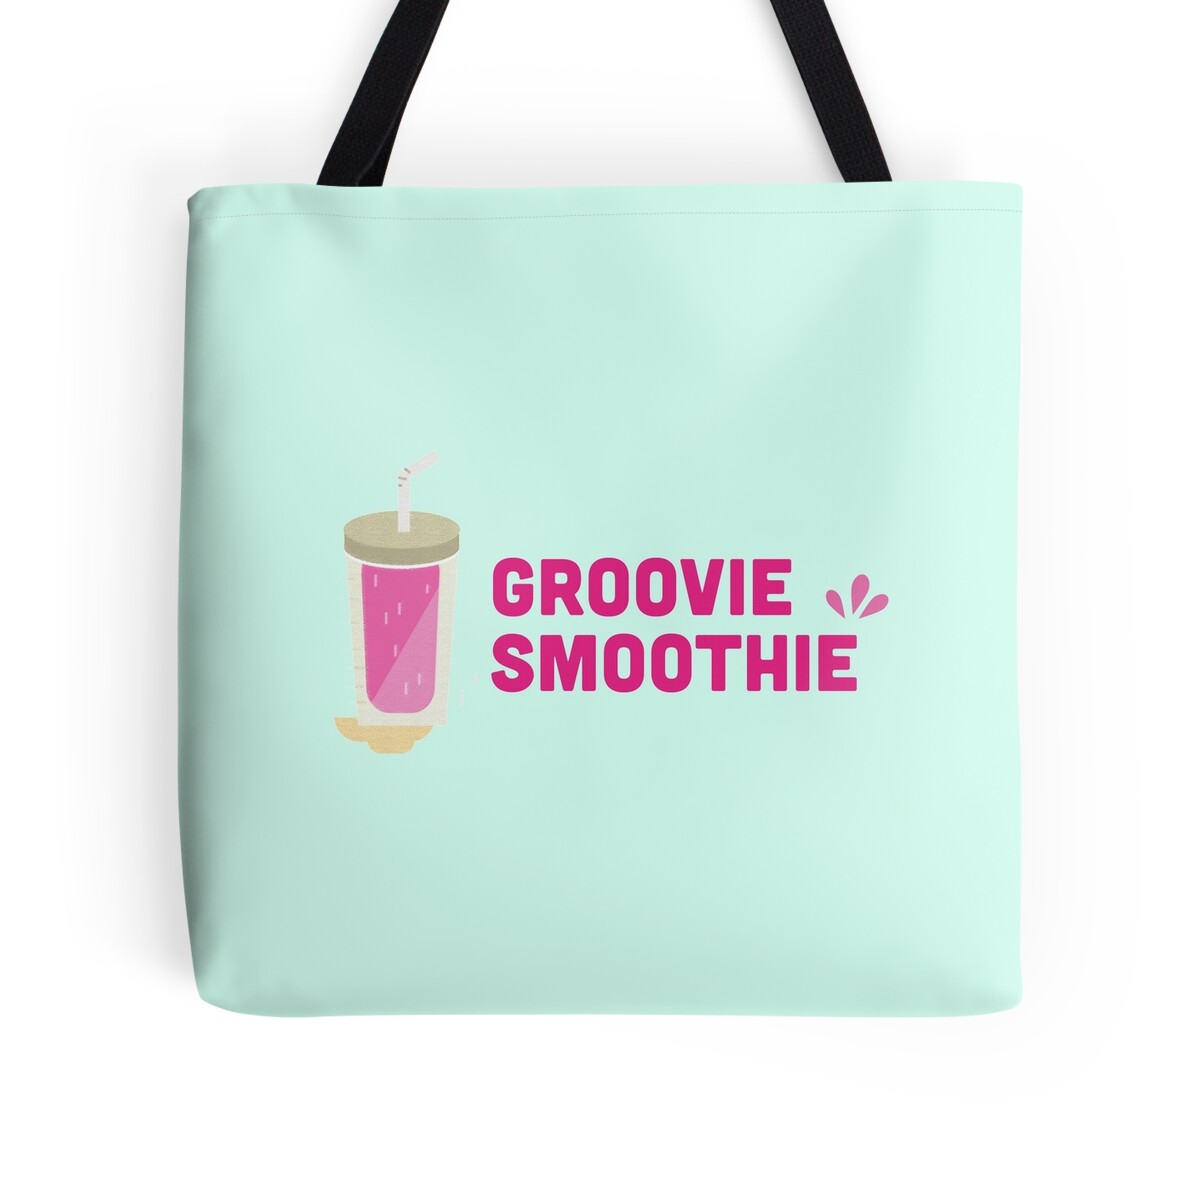 """Groovie Smoothie"""" Tote Bags by tofusan 